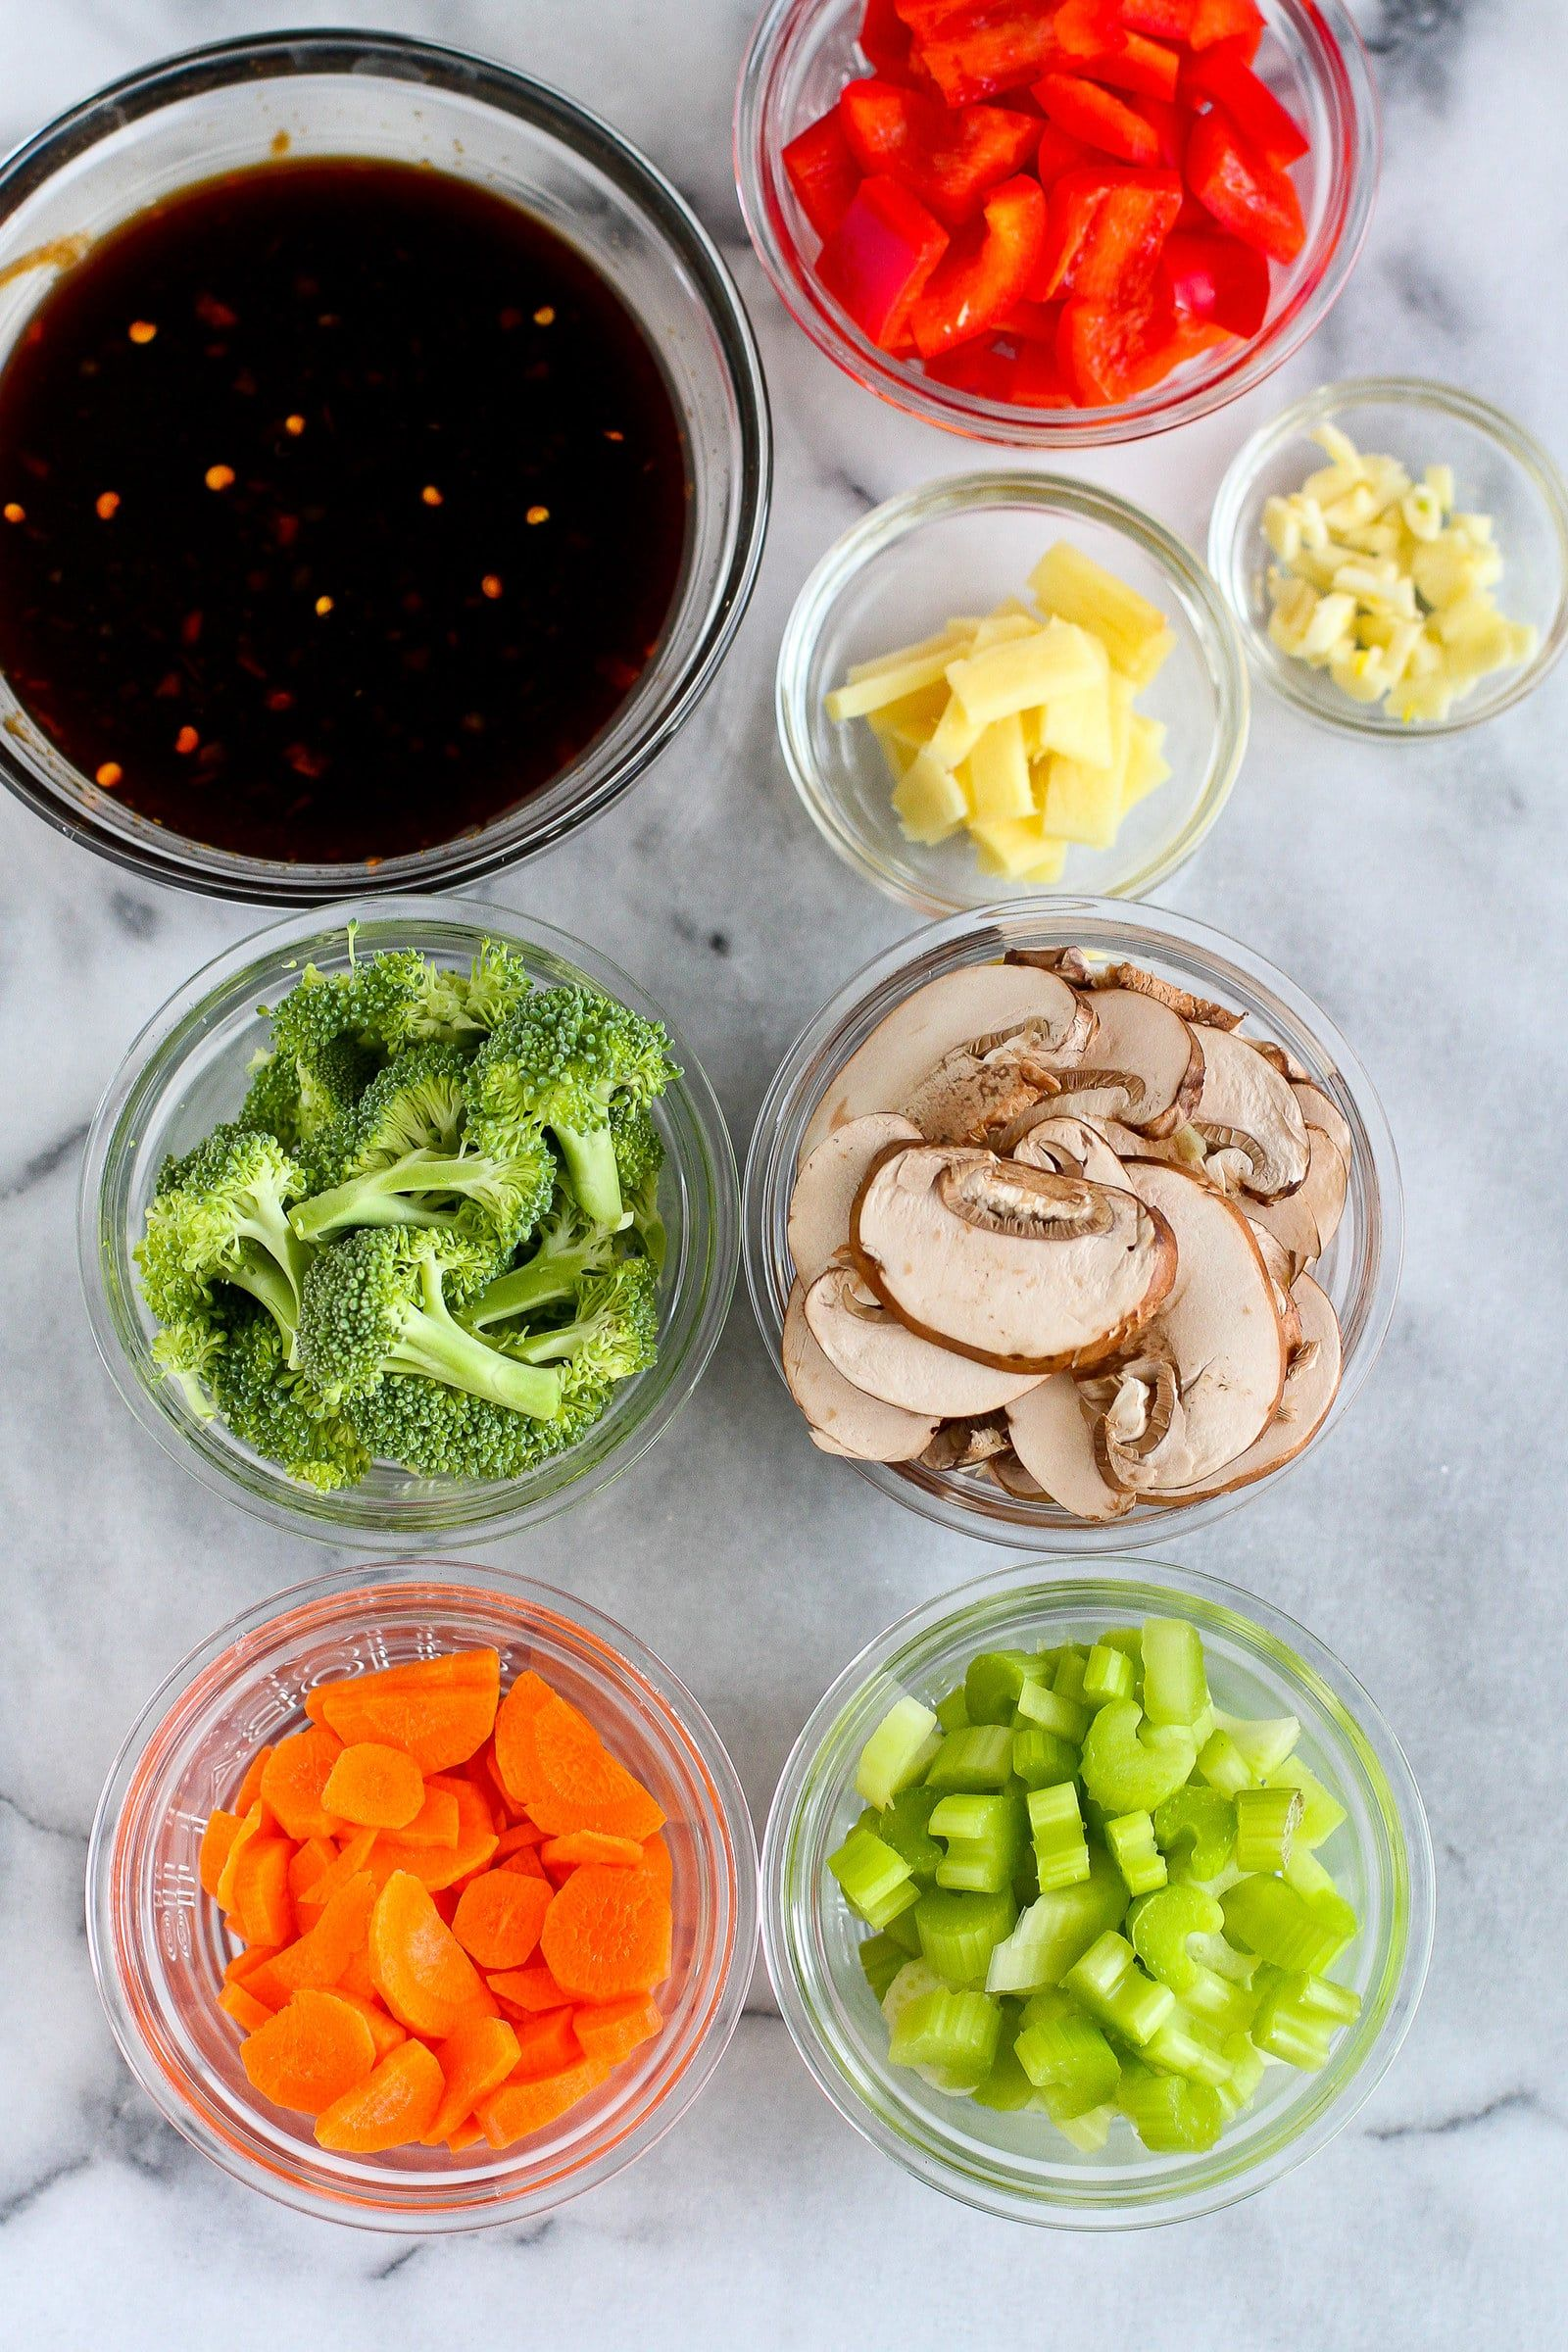 Pre Measure And Chop Everything You Need For The Recipe Before Cooking It Makes The Actual Cooking Go More Smoothly And Quic Mise En Place Food Easy Meal Prep